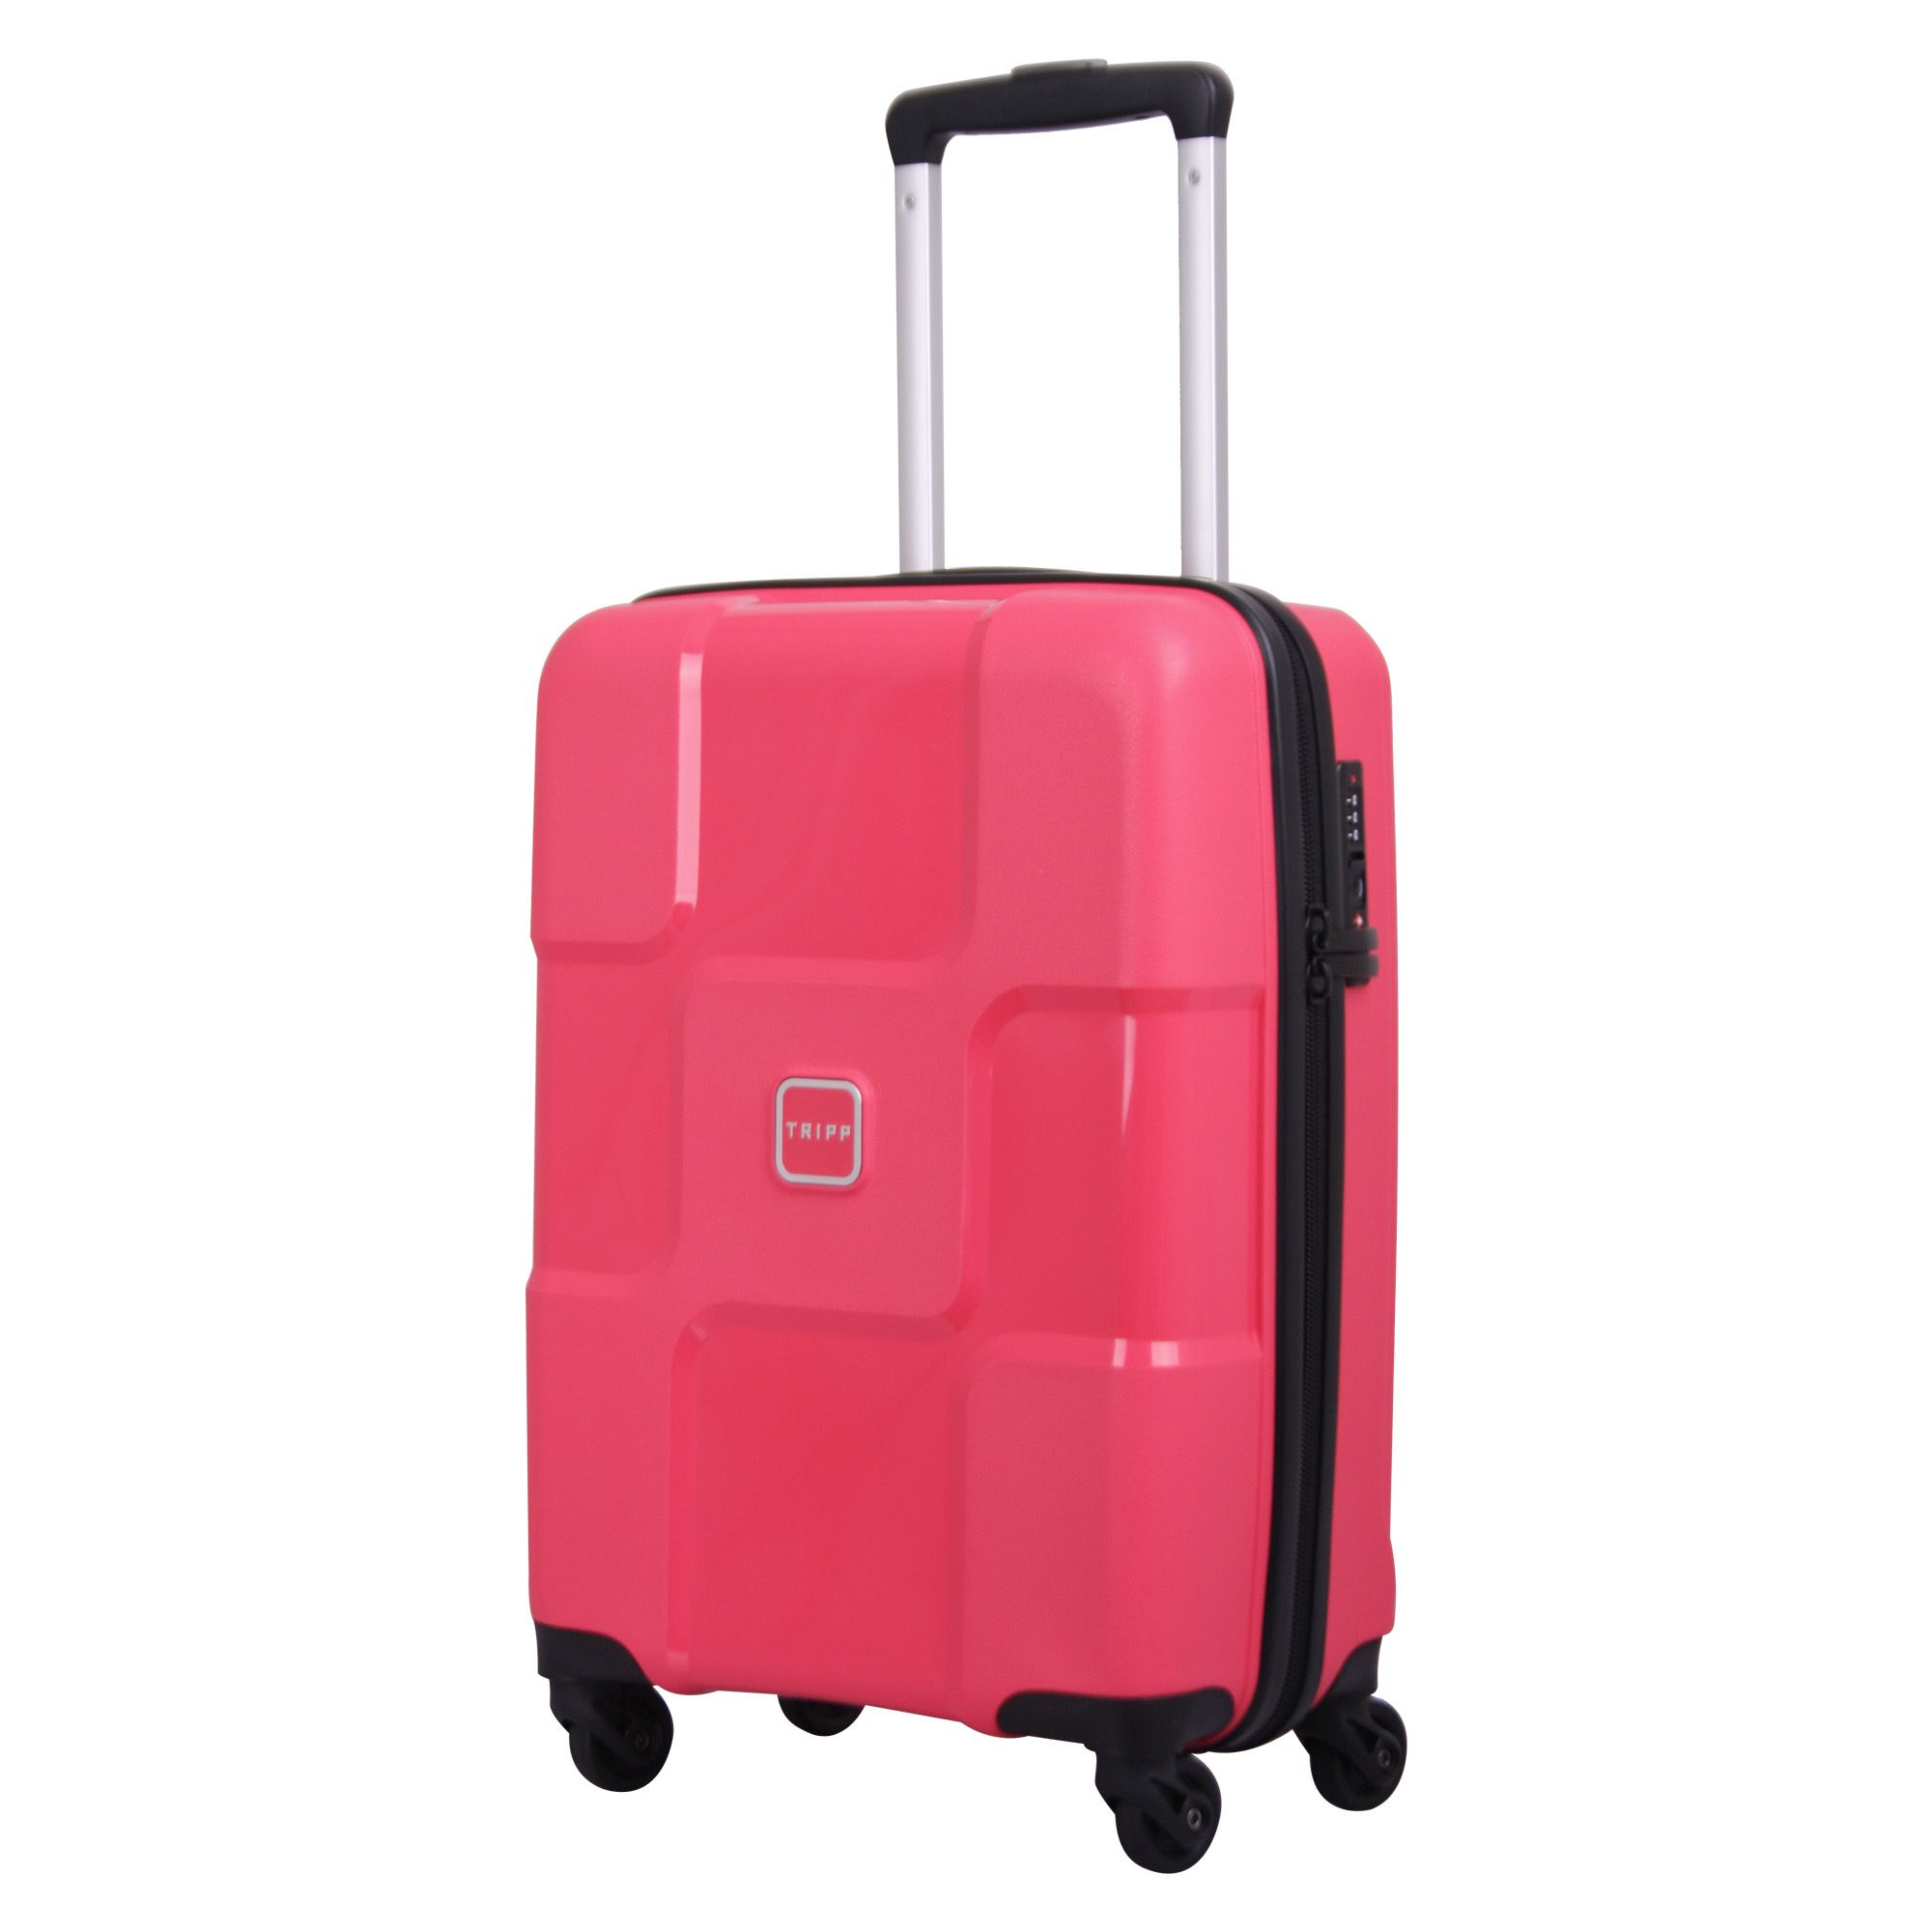 tripp watermelon 39 world 39 4 wheel cabin suitcase hard suitcases tripp ltd. Black Bedroom Furniture Sets. Home Design Ideas